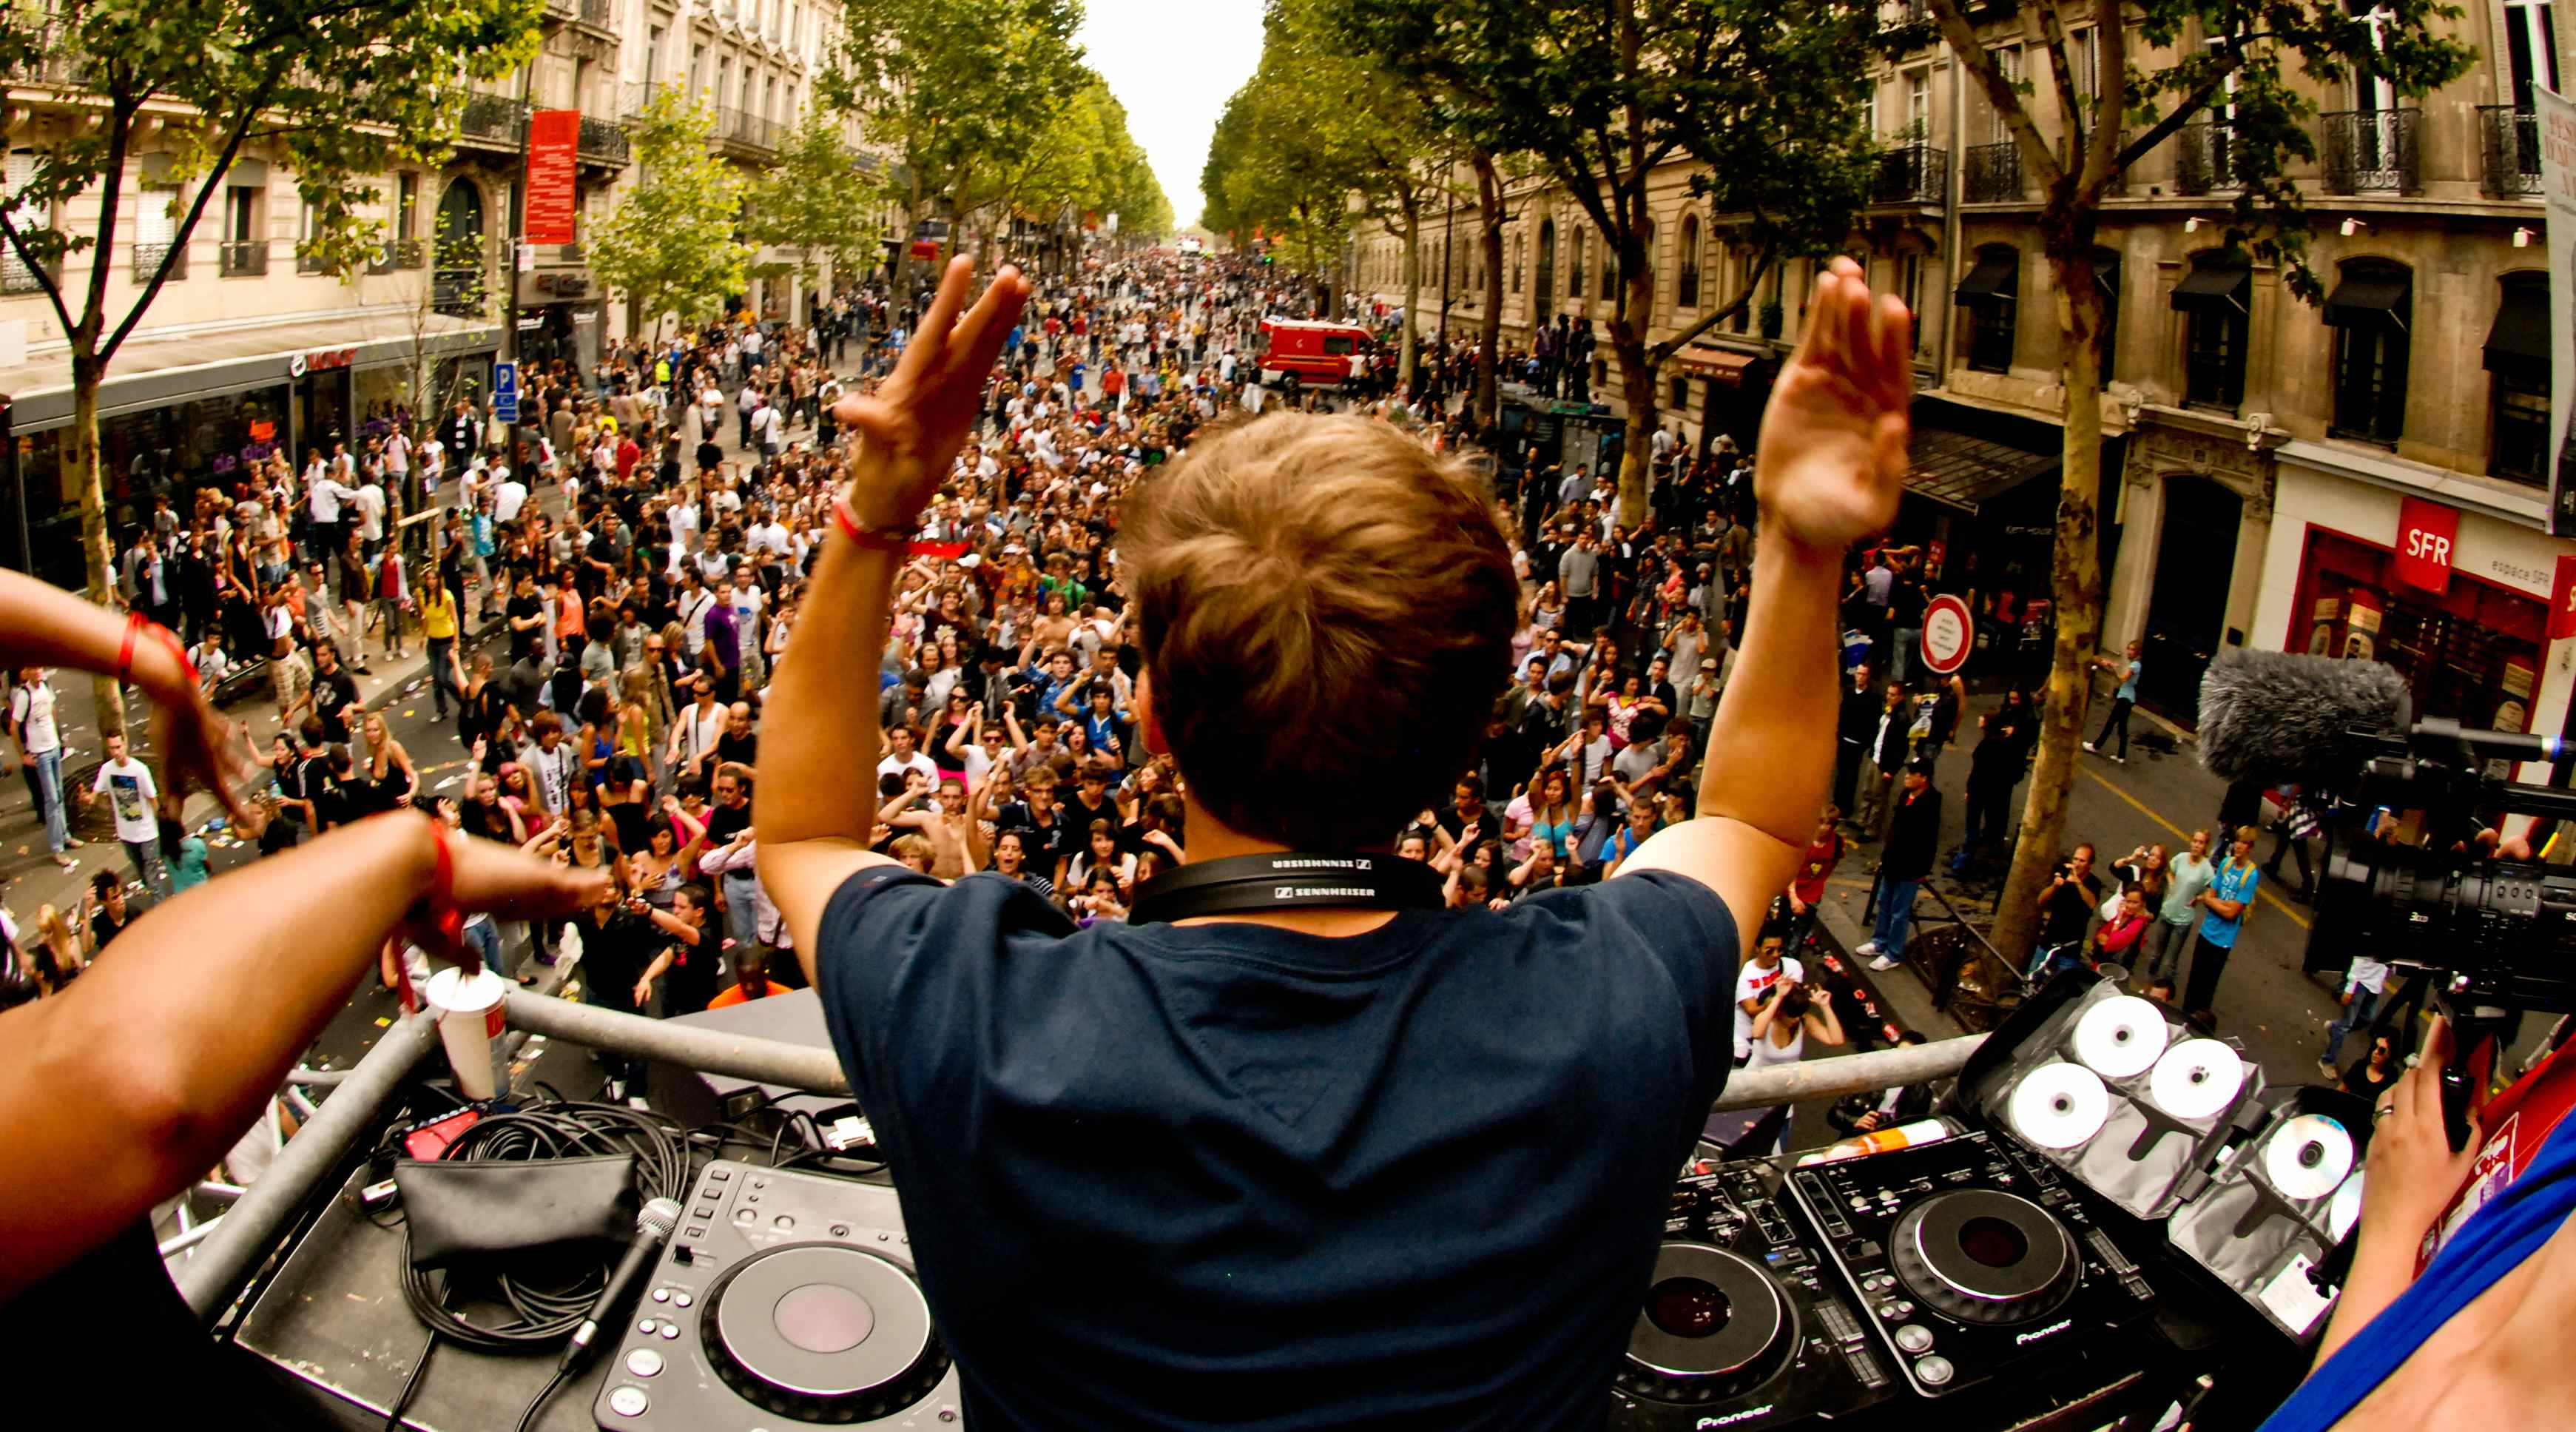 Avicii & Cazzette need to drop over to Europe !